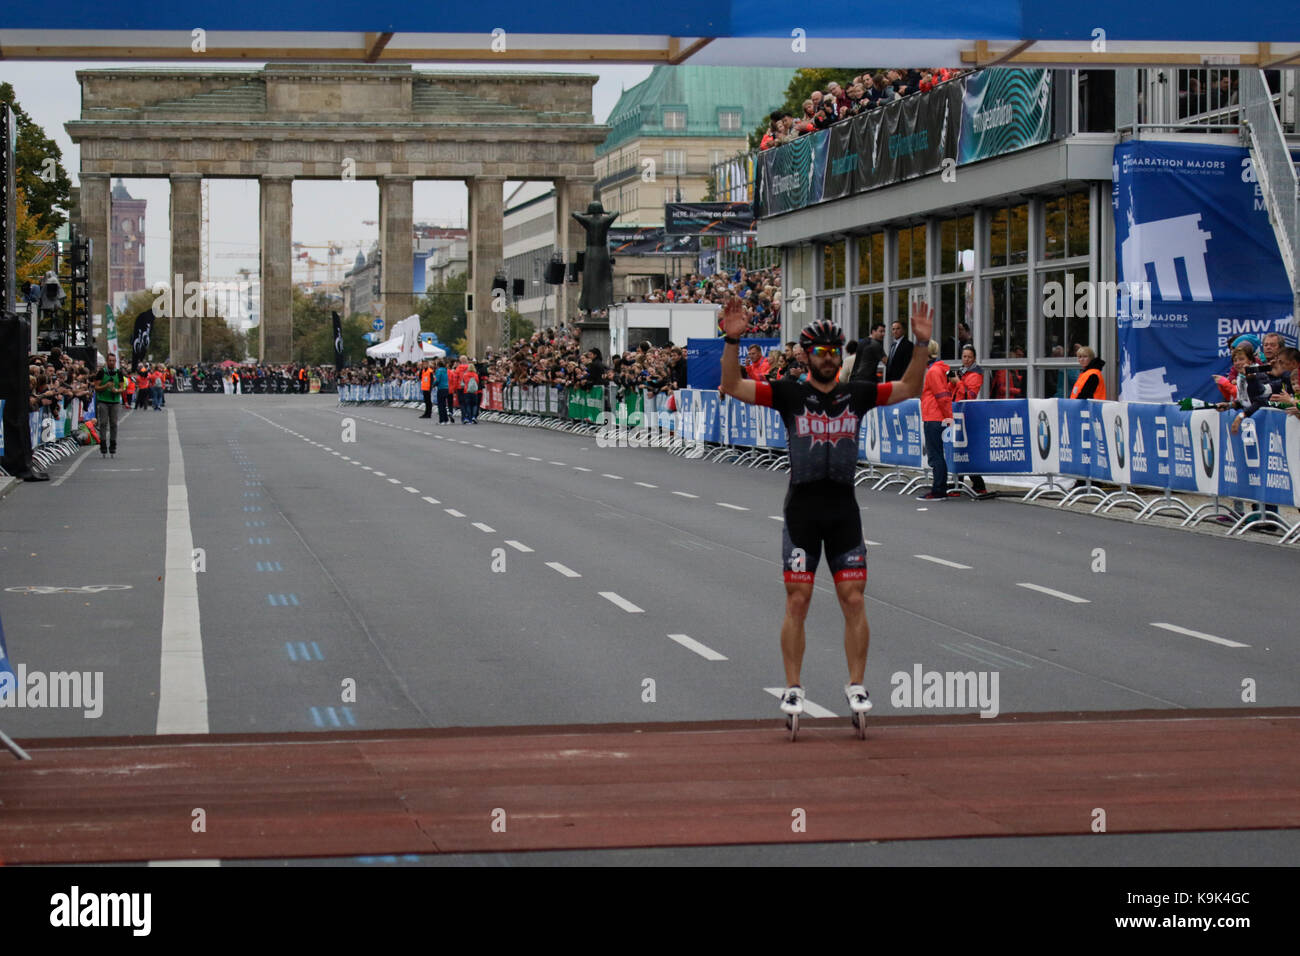 Berlin, Germany. 23rd September 2017. Second place Patxi Peula from Spain crosses the finishing line. Over 5,500 skater took part in the 2017 BMW Berlin Marathon Inline skating race, a day ahead of the  Marathon race. Bart Swings from Belgium won the race in 58:42 for the 5th year in a row. Credit: Michael Debets/Alamy Live News Stock Photo